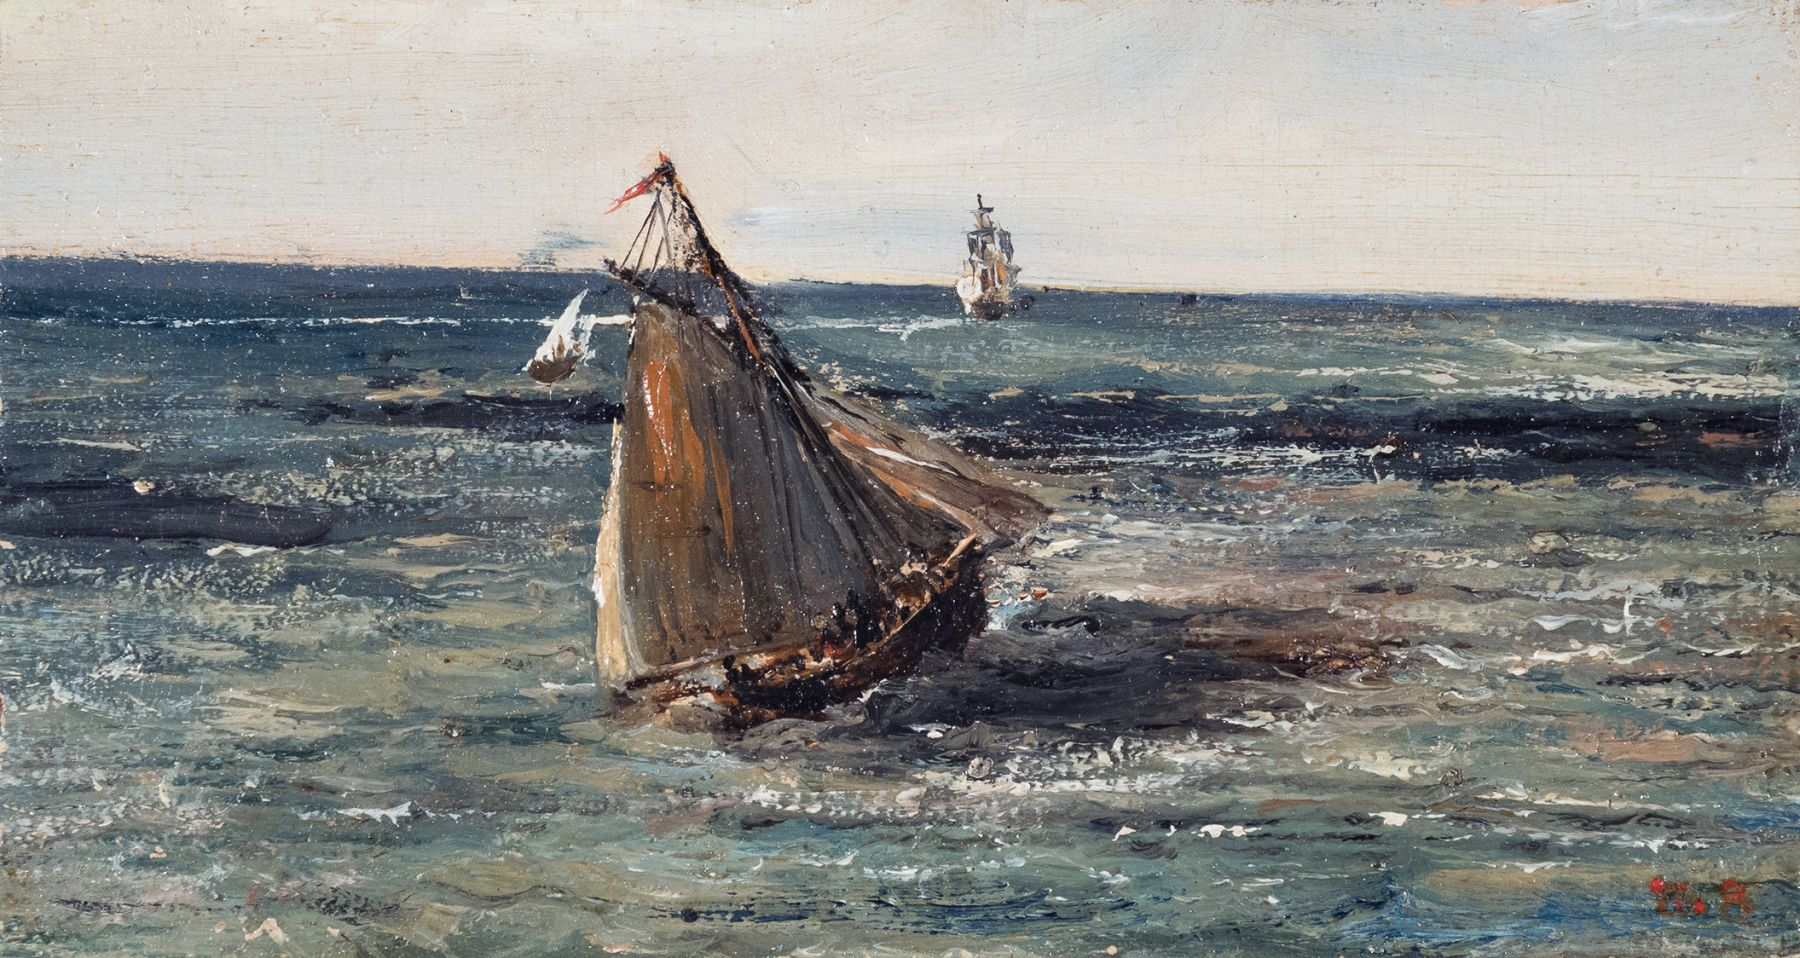 Theodore Rousseau Seascape, c. 1830  Oil on panel 2 7/8 x 5 1/2 inches